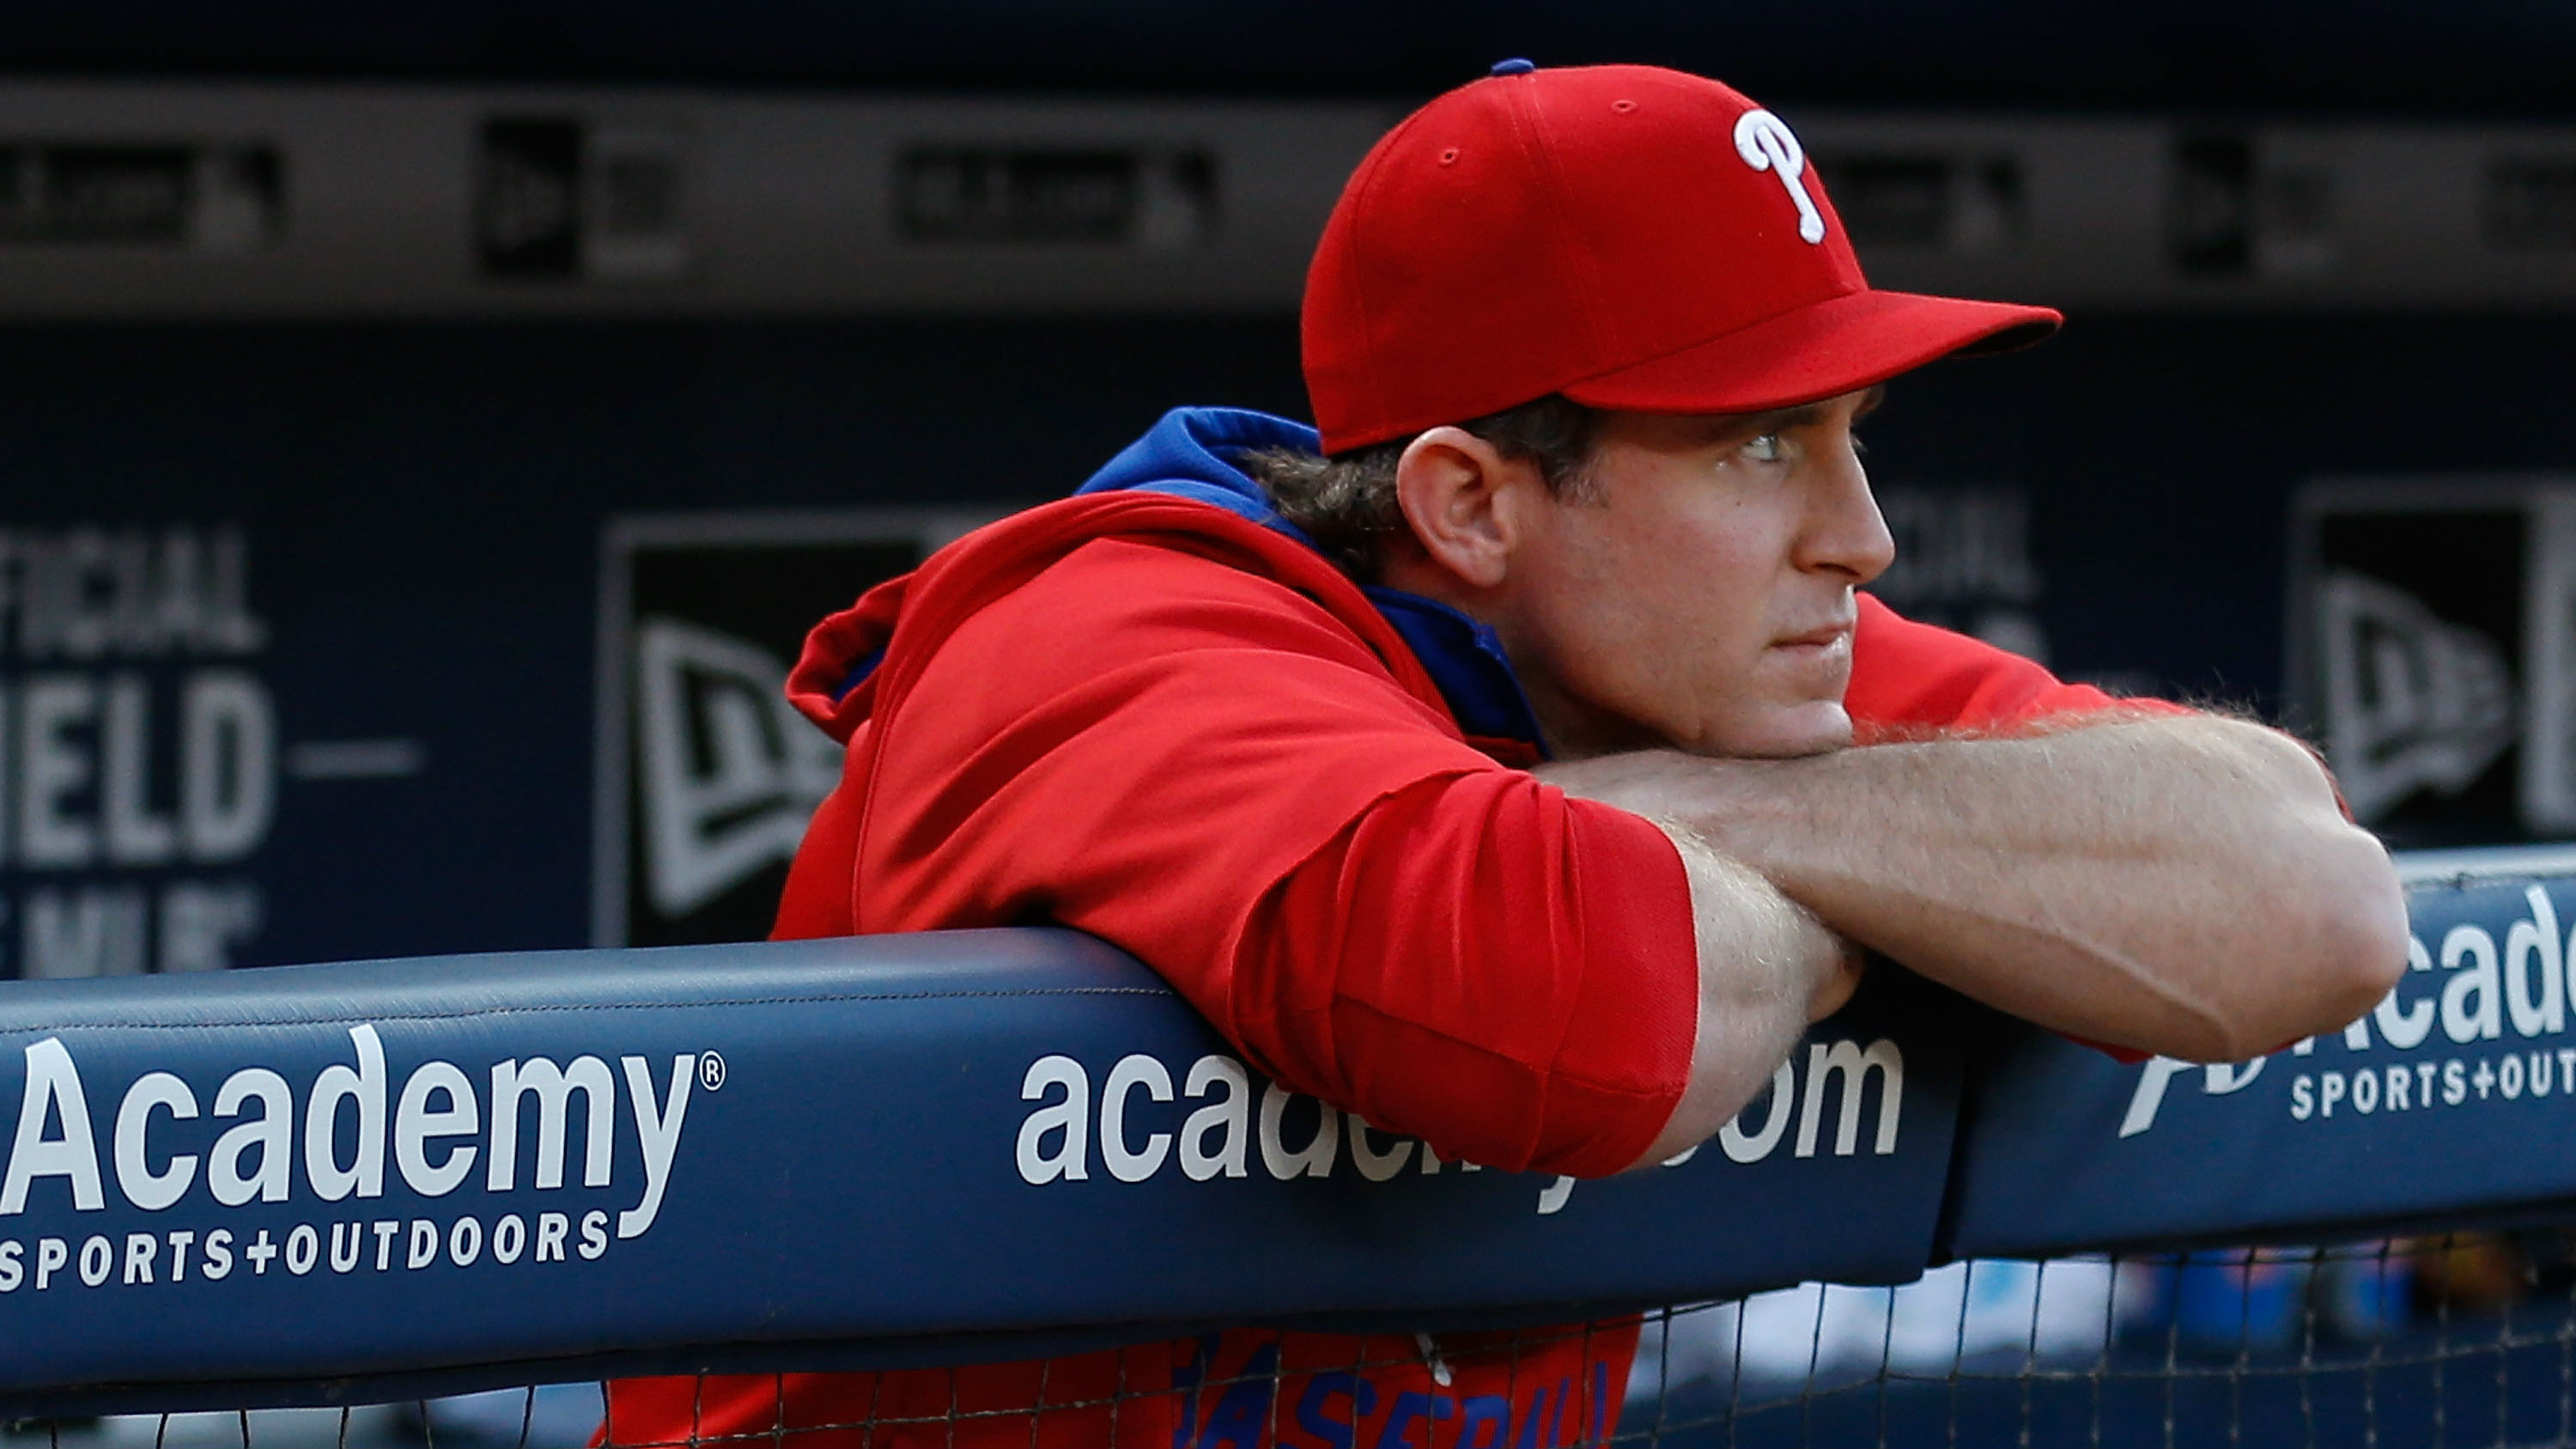 ATLANTA, GA - MAY 05: Second baseman Chase Utley #26 of the Philadelphia Phillies sits out of the game against the Atlanta Braves at Turner Field on May 5, 2015 in Atlanta, Georgia. (Photo by Mike Zarrilli/Getty Images)